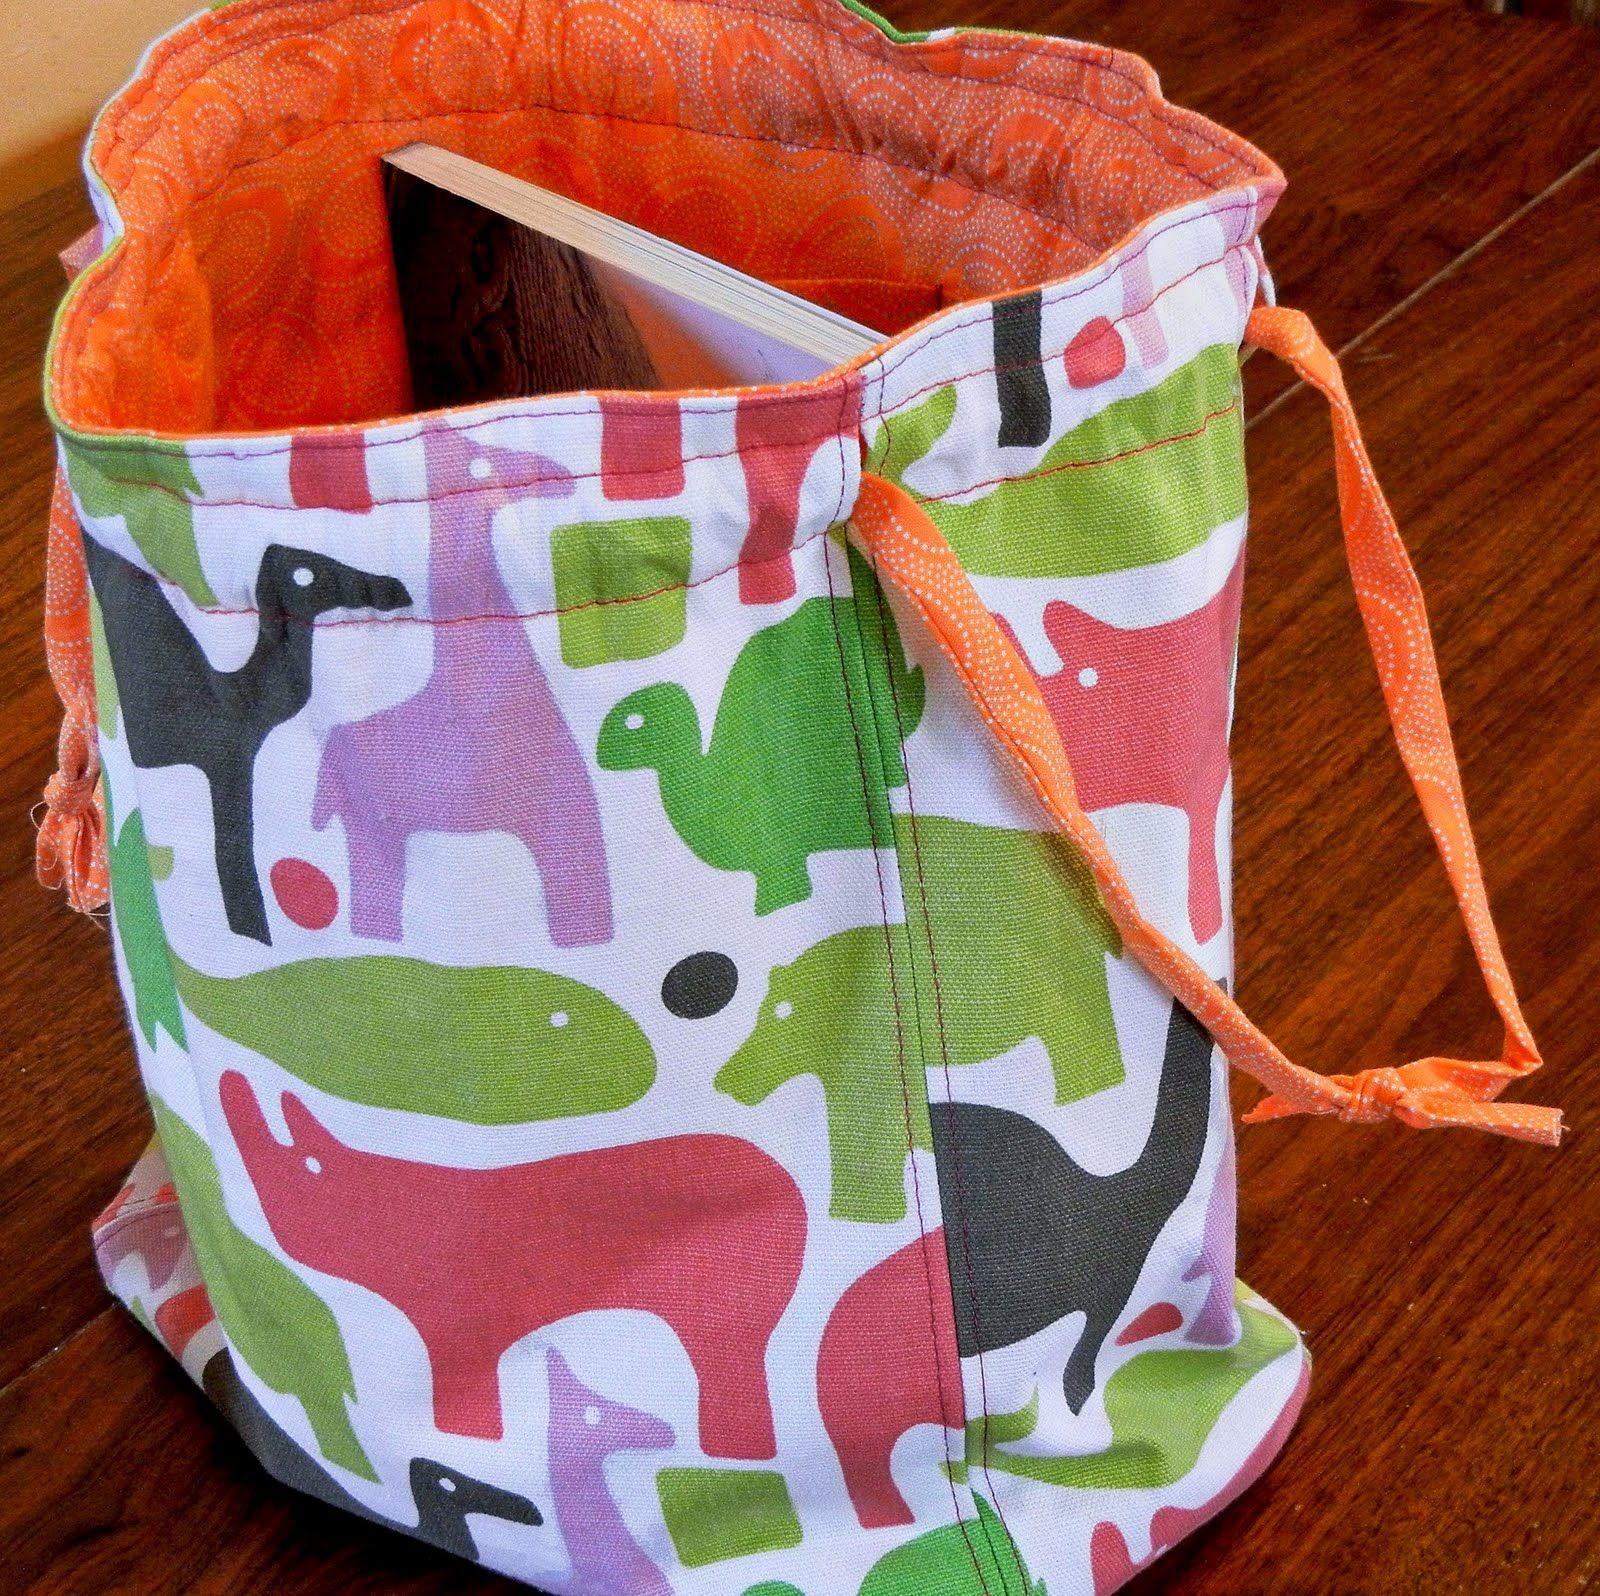 Knitting Bag Tutorial - Perfect project bag for knitting ...